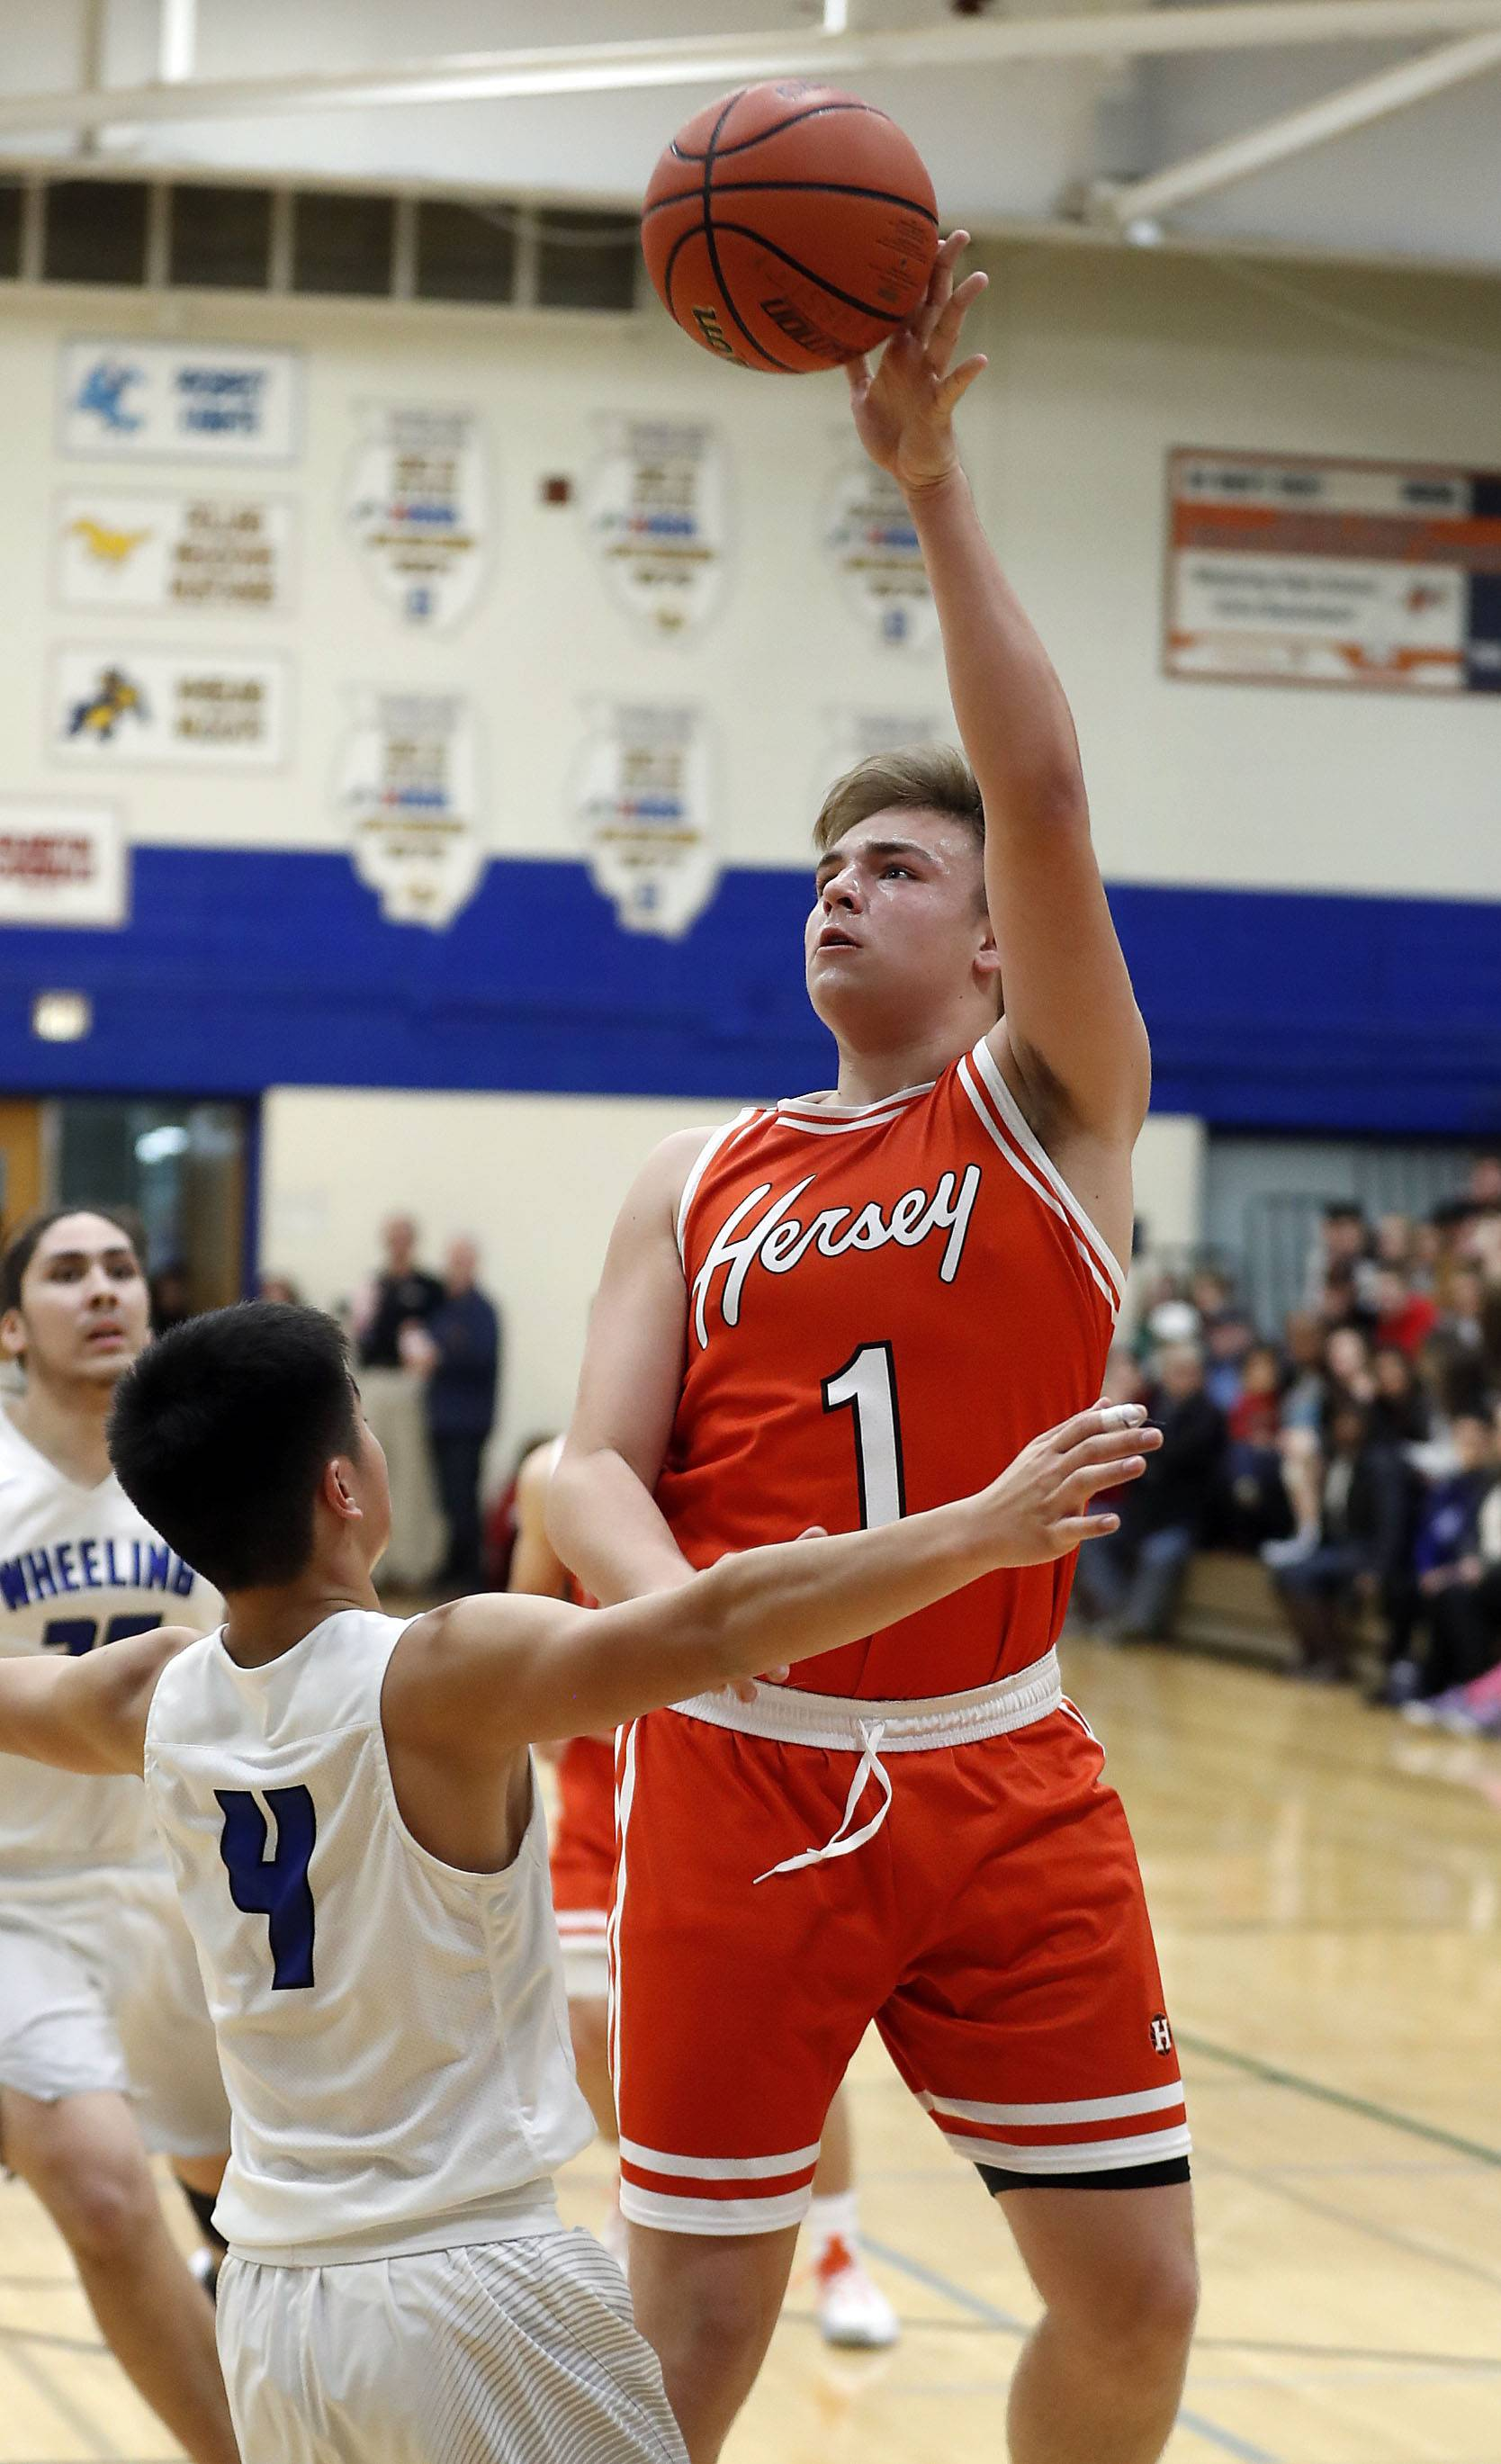 Hersey's Jacob Kluczewski (1) shoots over Wheeling's Jeremy Kim during their game Friday at Wheeling High School.